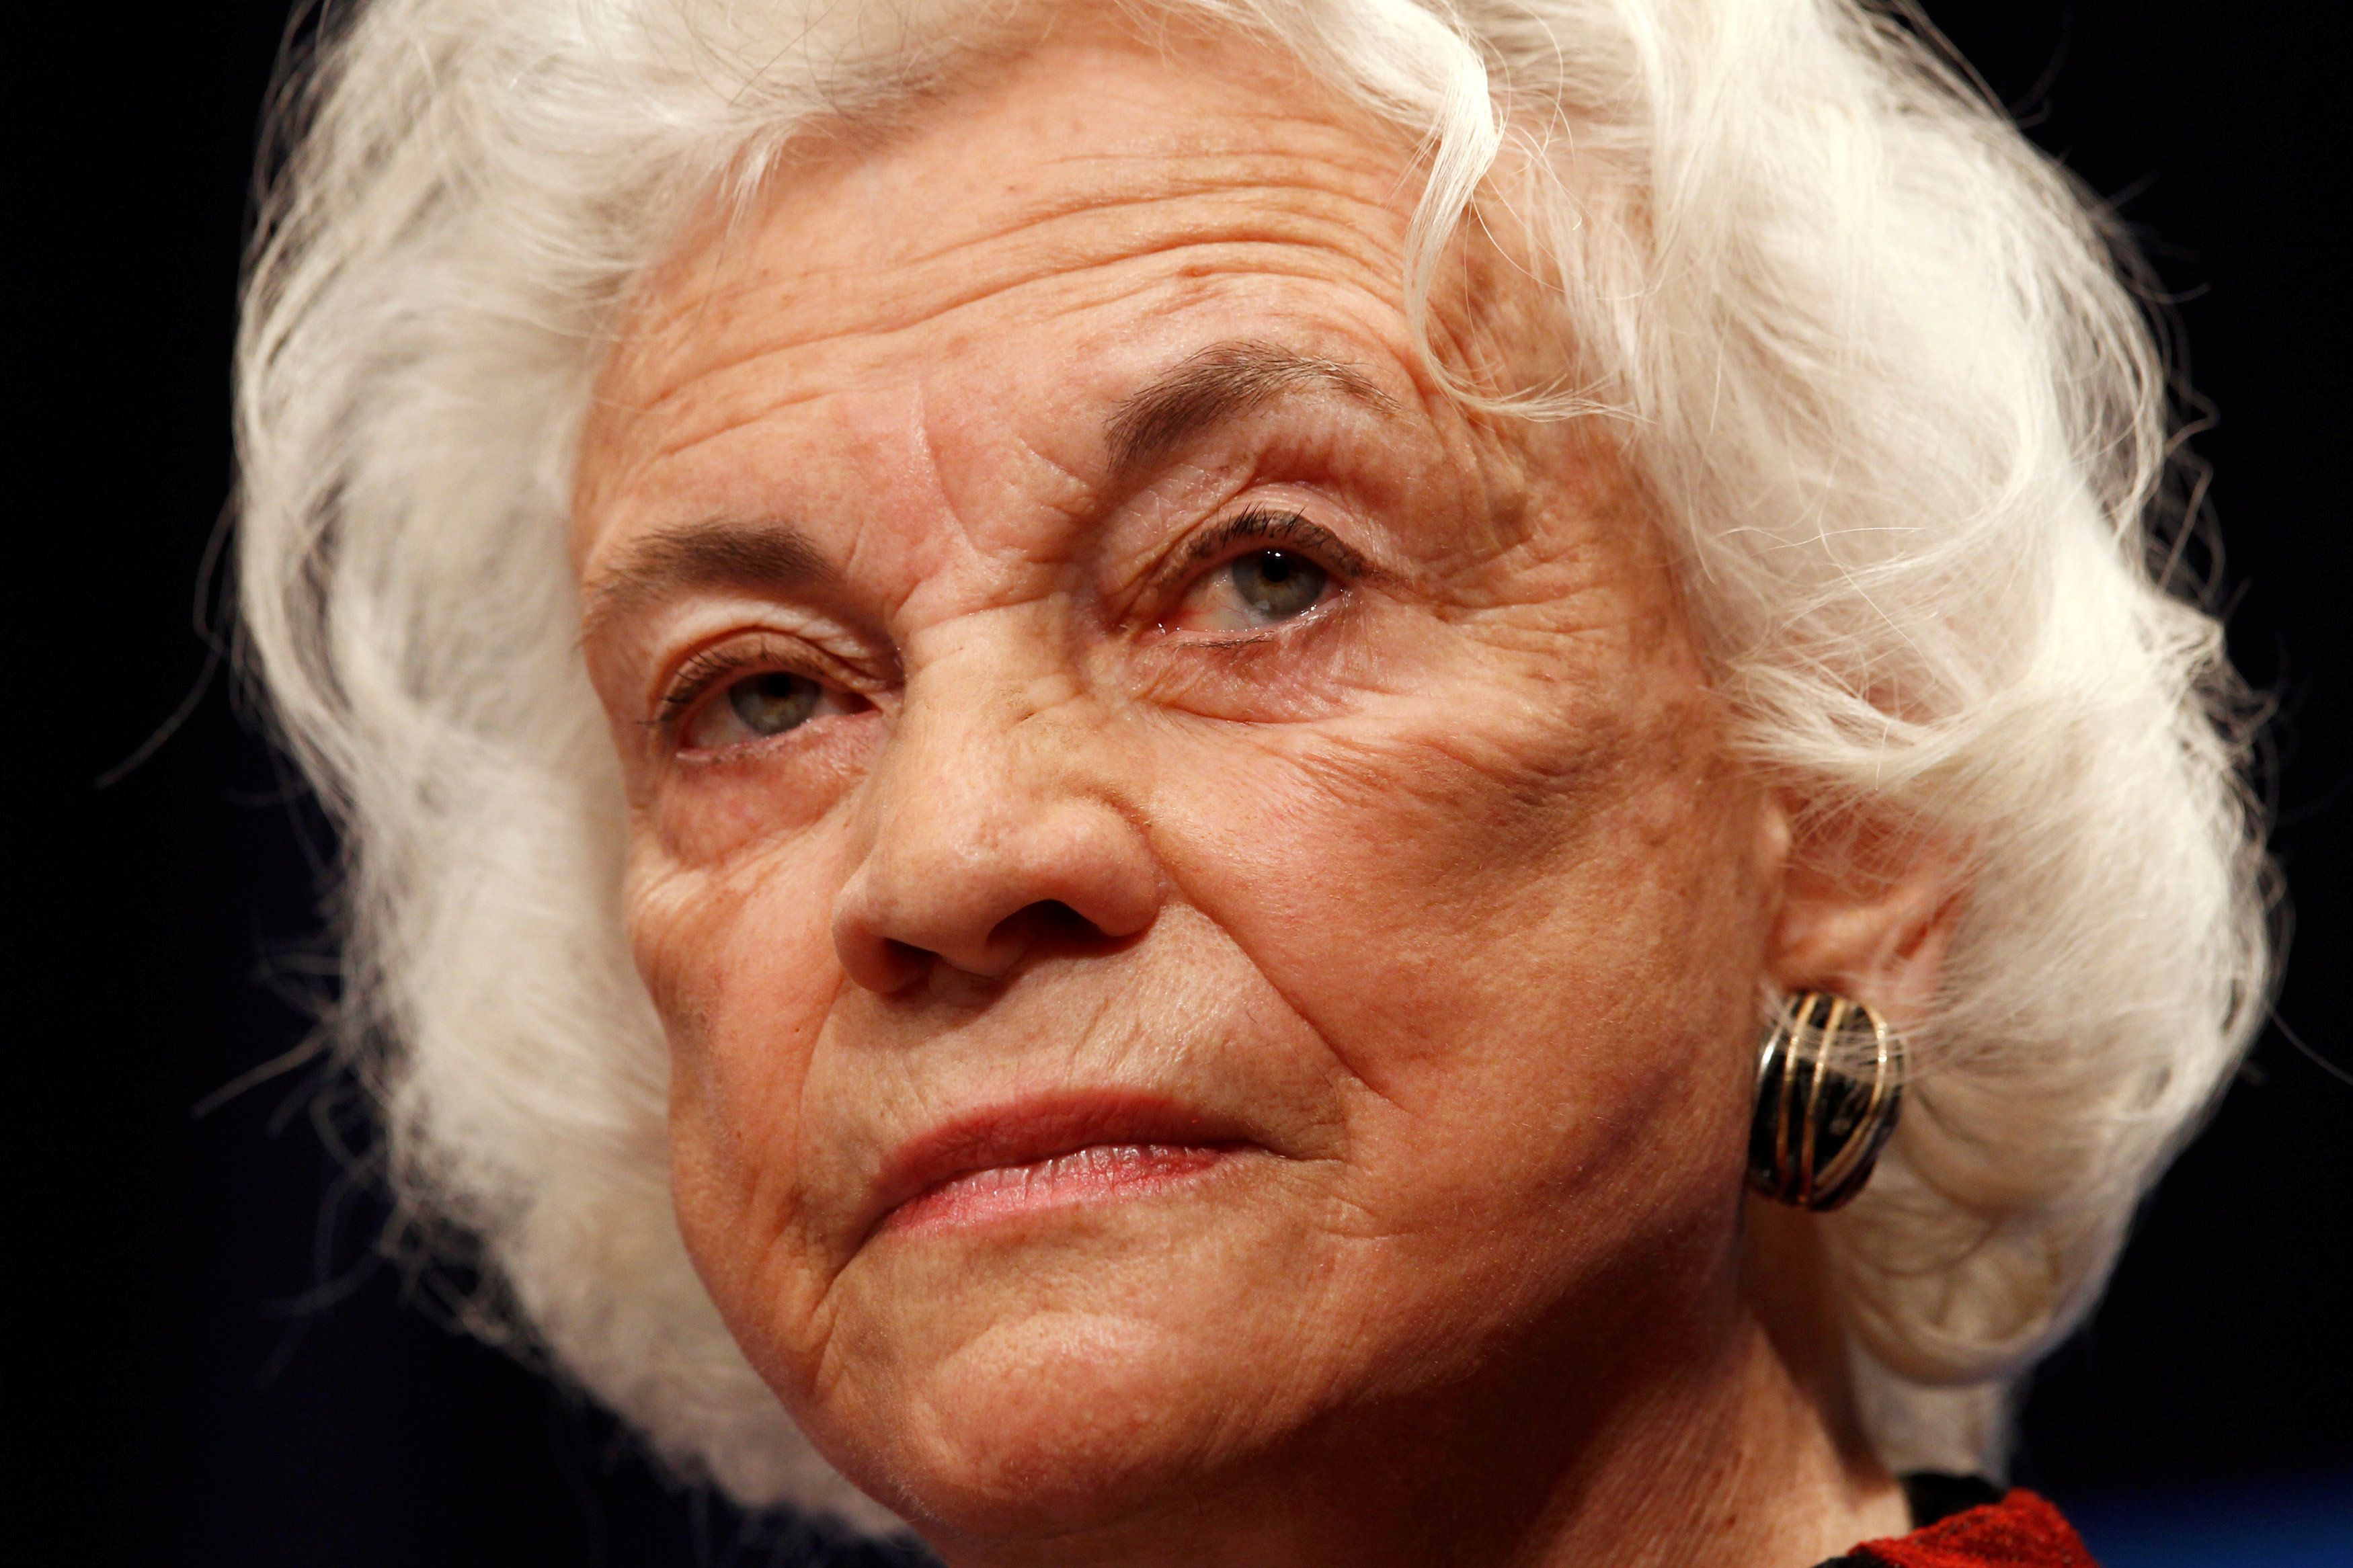 Sandra Day O'Connor, Former Supreme Court Justice, Announces Dementia Diagnosis